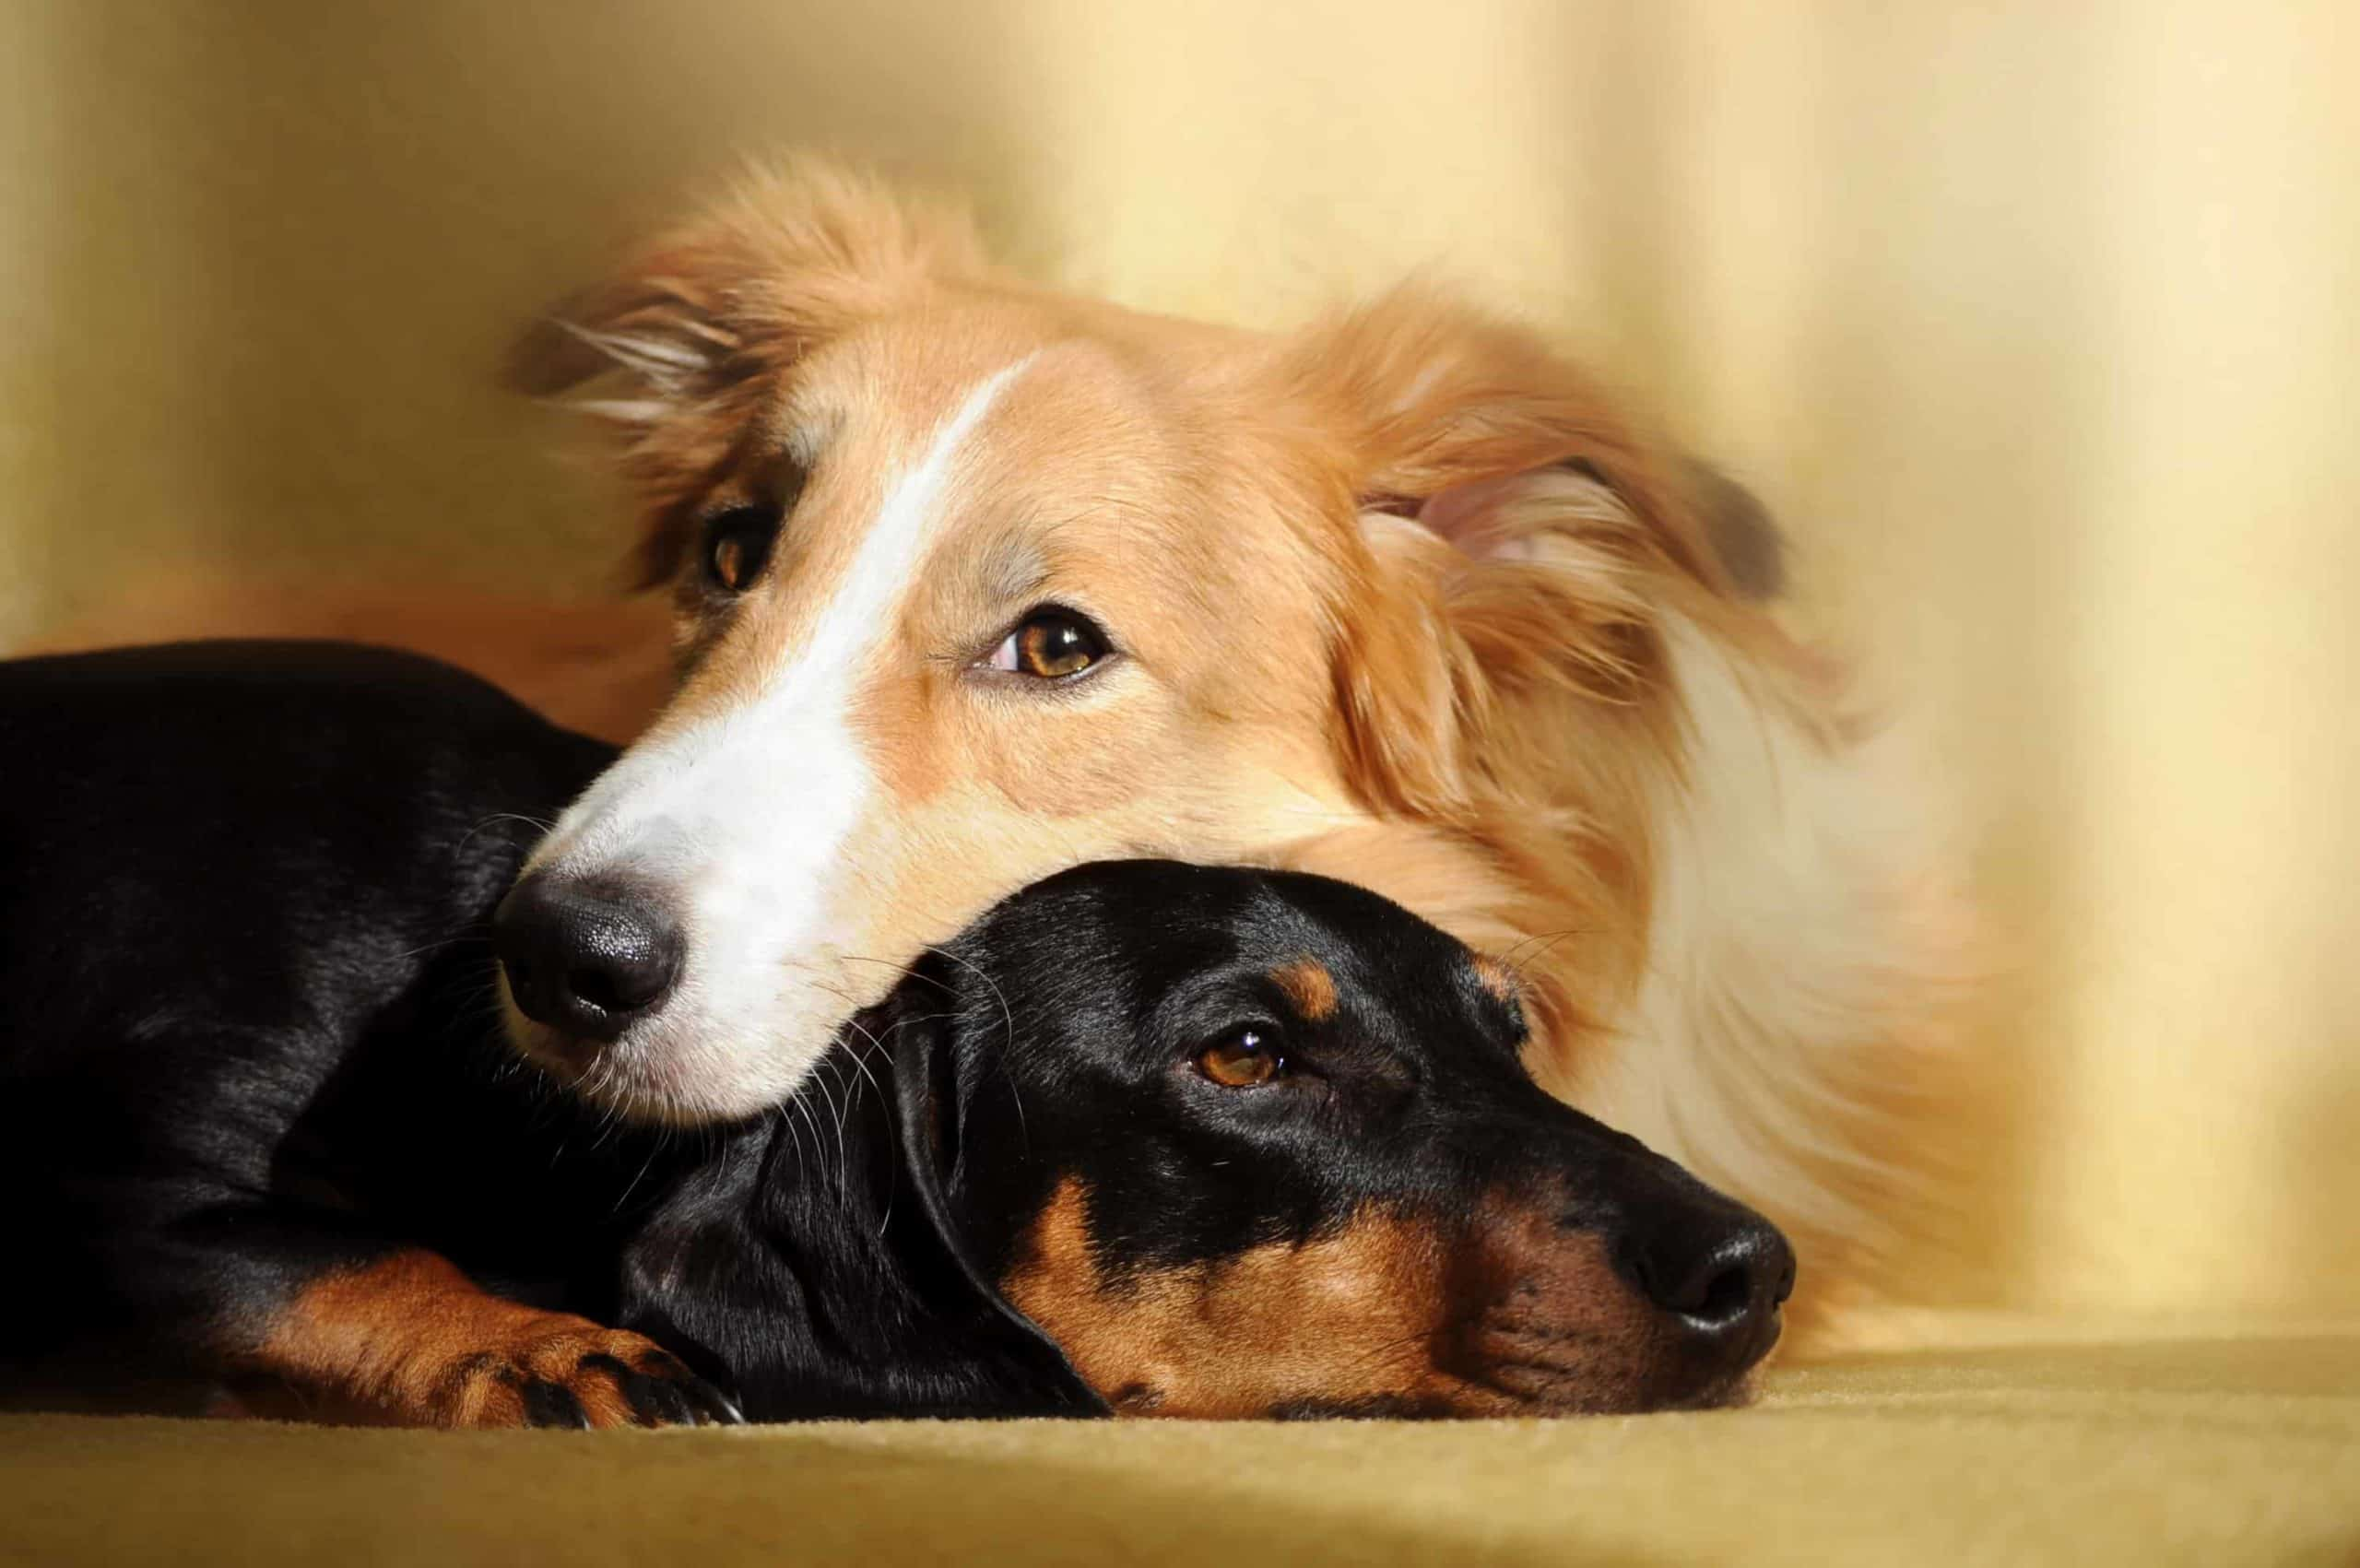 Border Collie and Dachshund snuggle together.